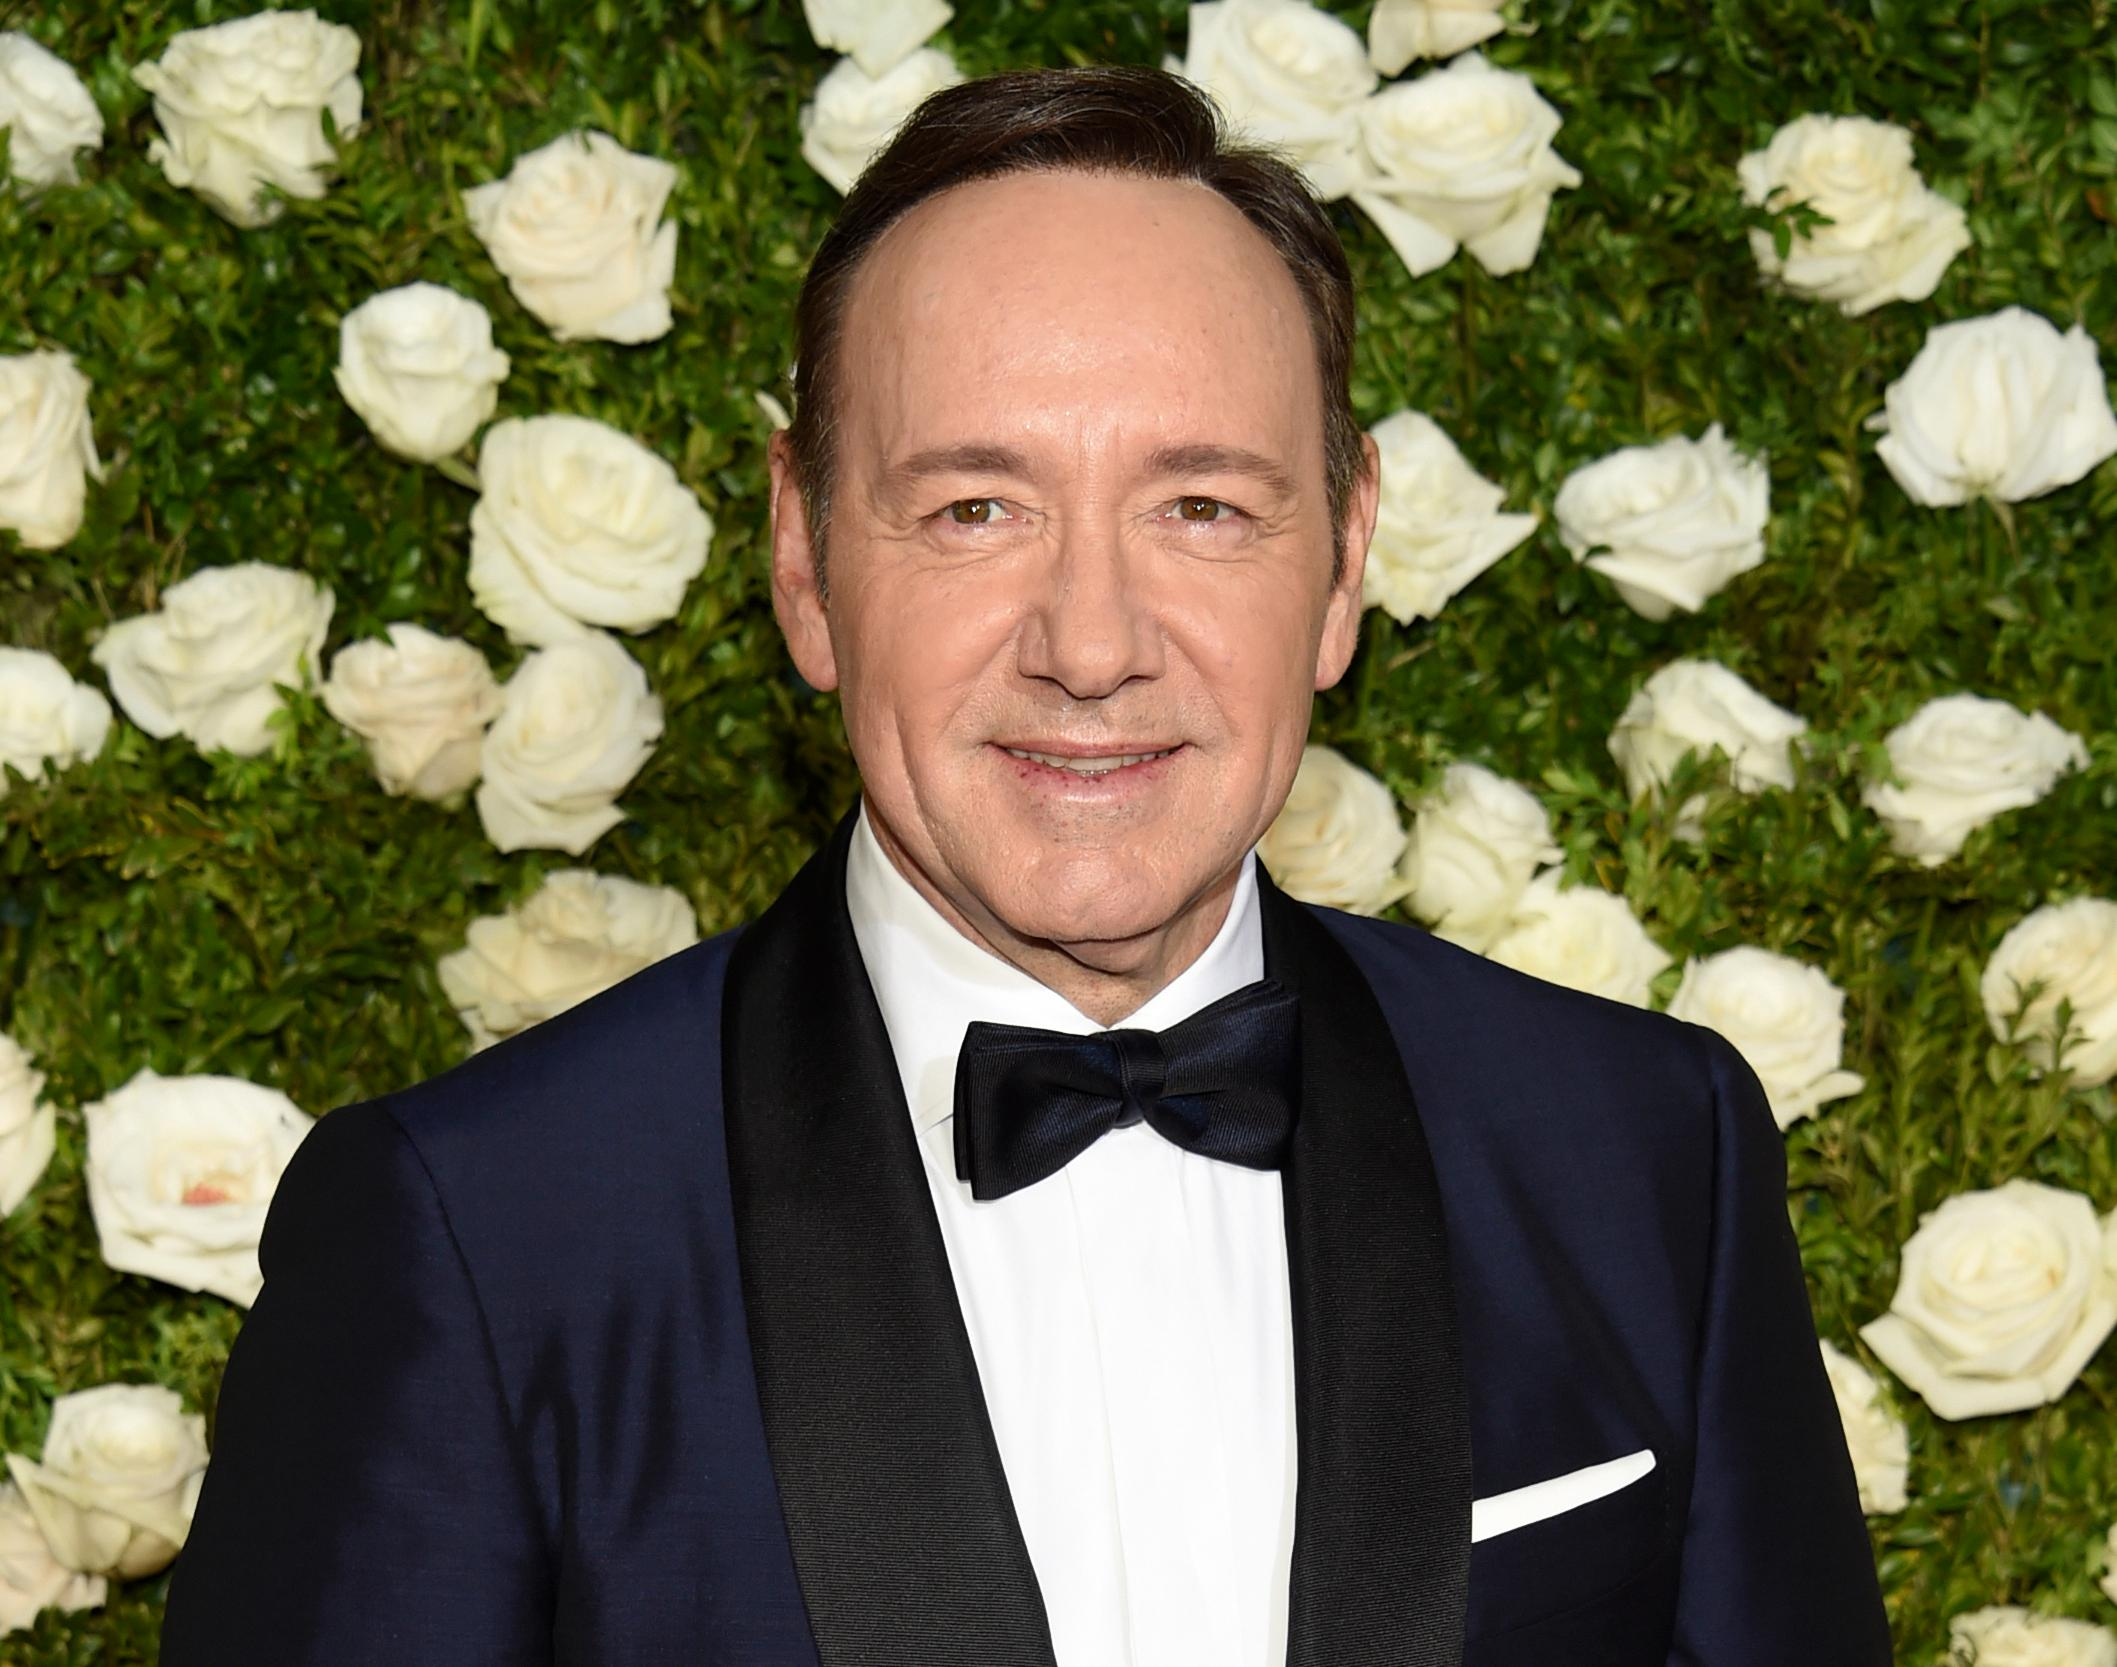 "FILE - In this June 11, 2017 file photo, Kevin Spacey arrives at the 71st annual Tony Awards at Radio City Music Hall in New York. Spacey is accused of sexual misconduct or assault by at least 24 men. London police are reportedly investigating a sexual assault. He was fired from ""House of Cards"" and replaced in Ridley Scott's completed film ""All the Money in the World."" His former publicist has said he is seeking unspecified treatment. (Photo by Evan Agostini/Invision/AP, File)"